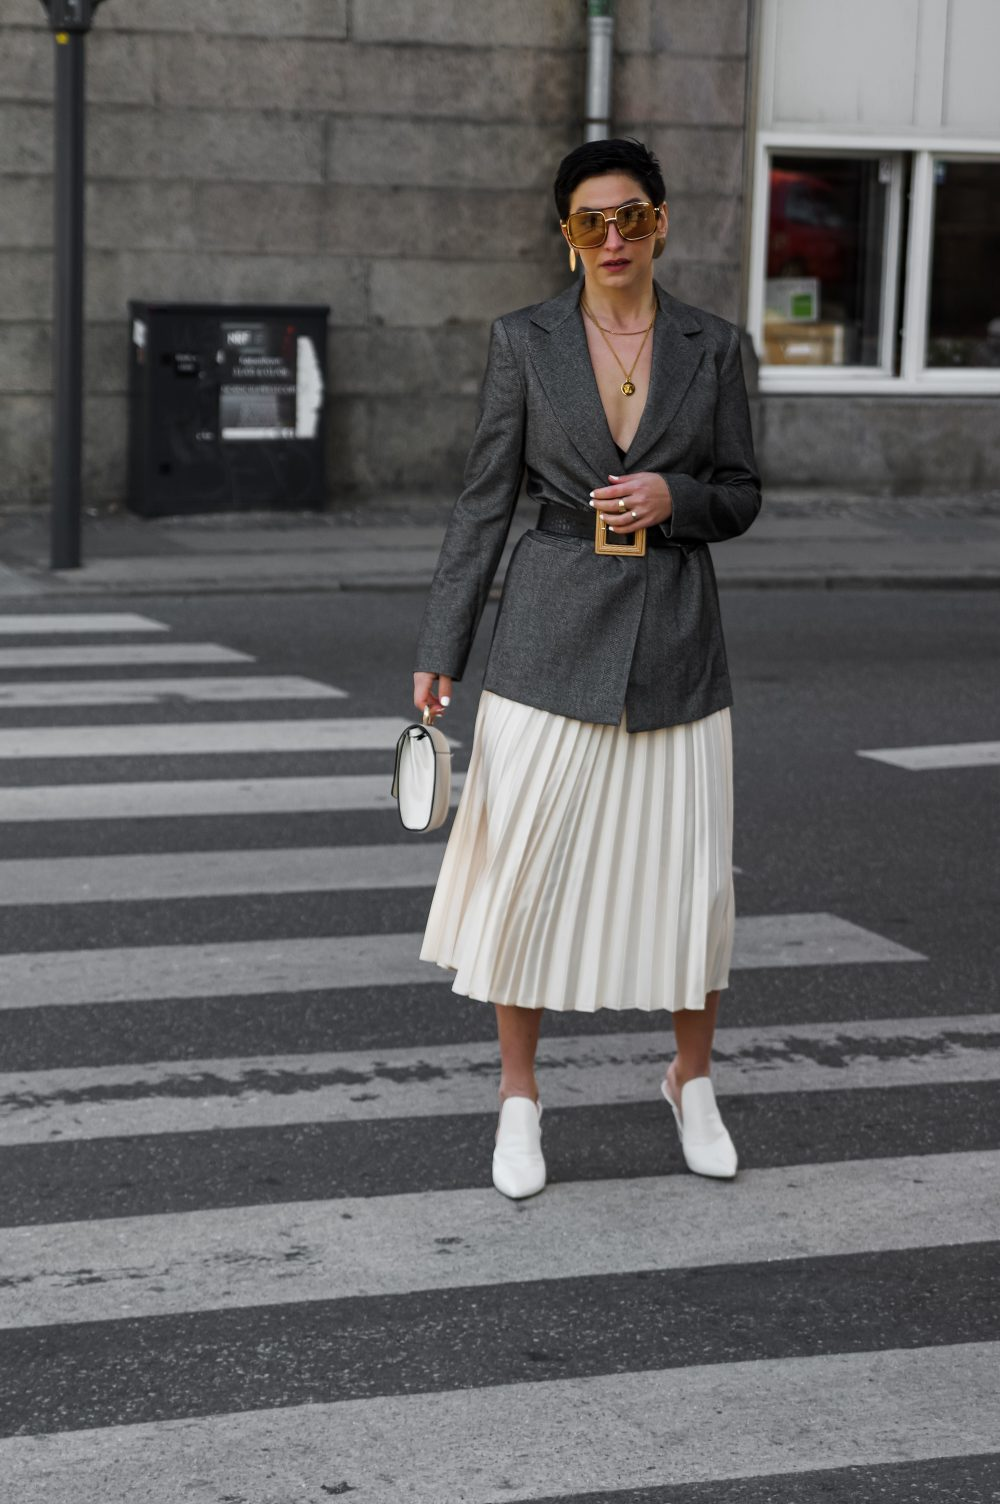 Spring-summer-work-wear-outfit-ideas-pleated-skirtblazer-scandinavian-fashion-style-white-skirt-minimalistic-style-sustainable-outfit-idea.